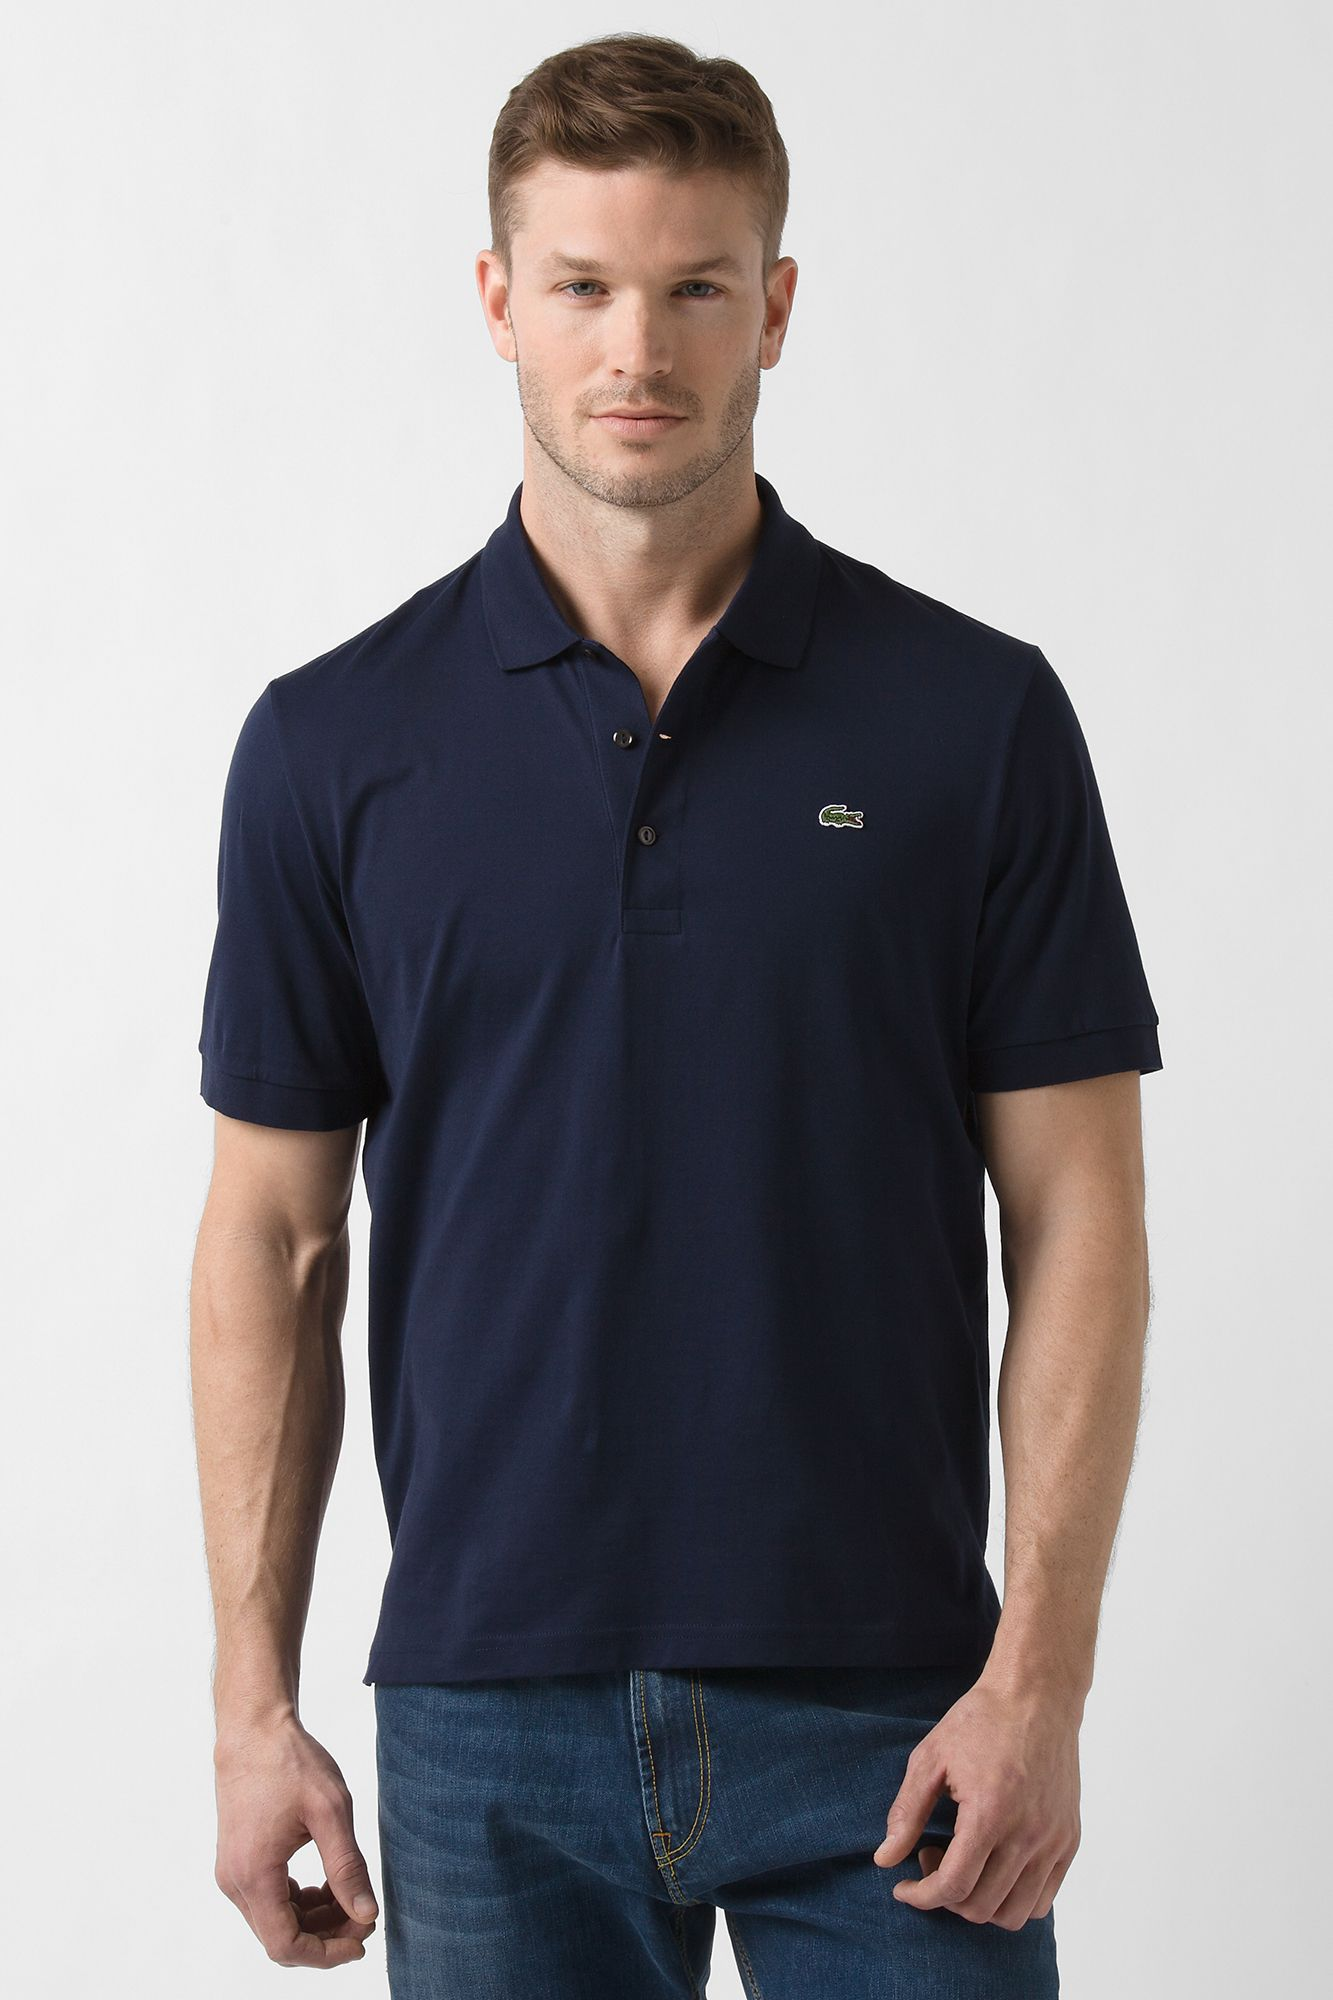 pima single men Buy a joseph abboud white pima cotton polo shirt online at men's wearhouse see the latest styles of men's golf shirts available in regular sizes and big & tall sizes.